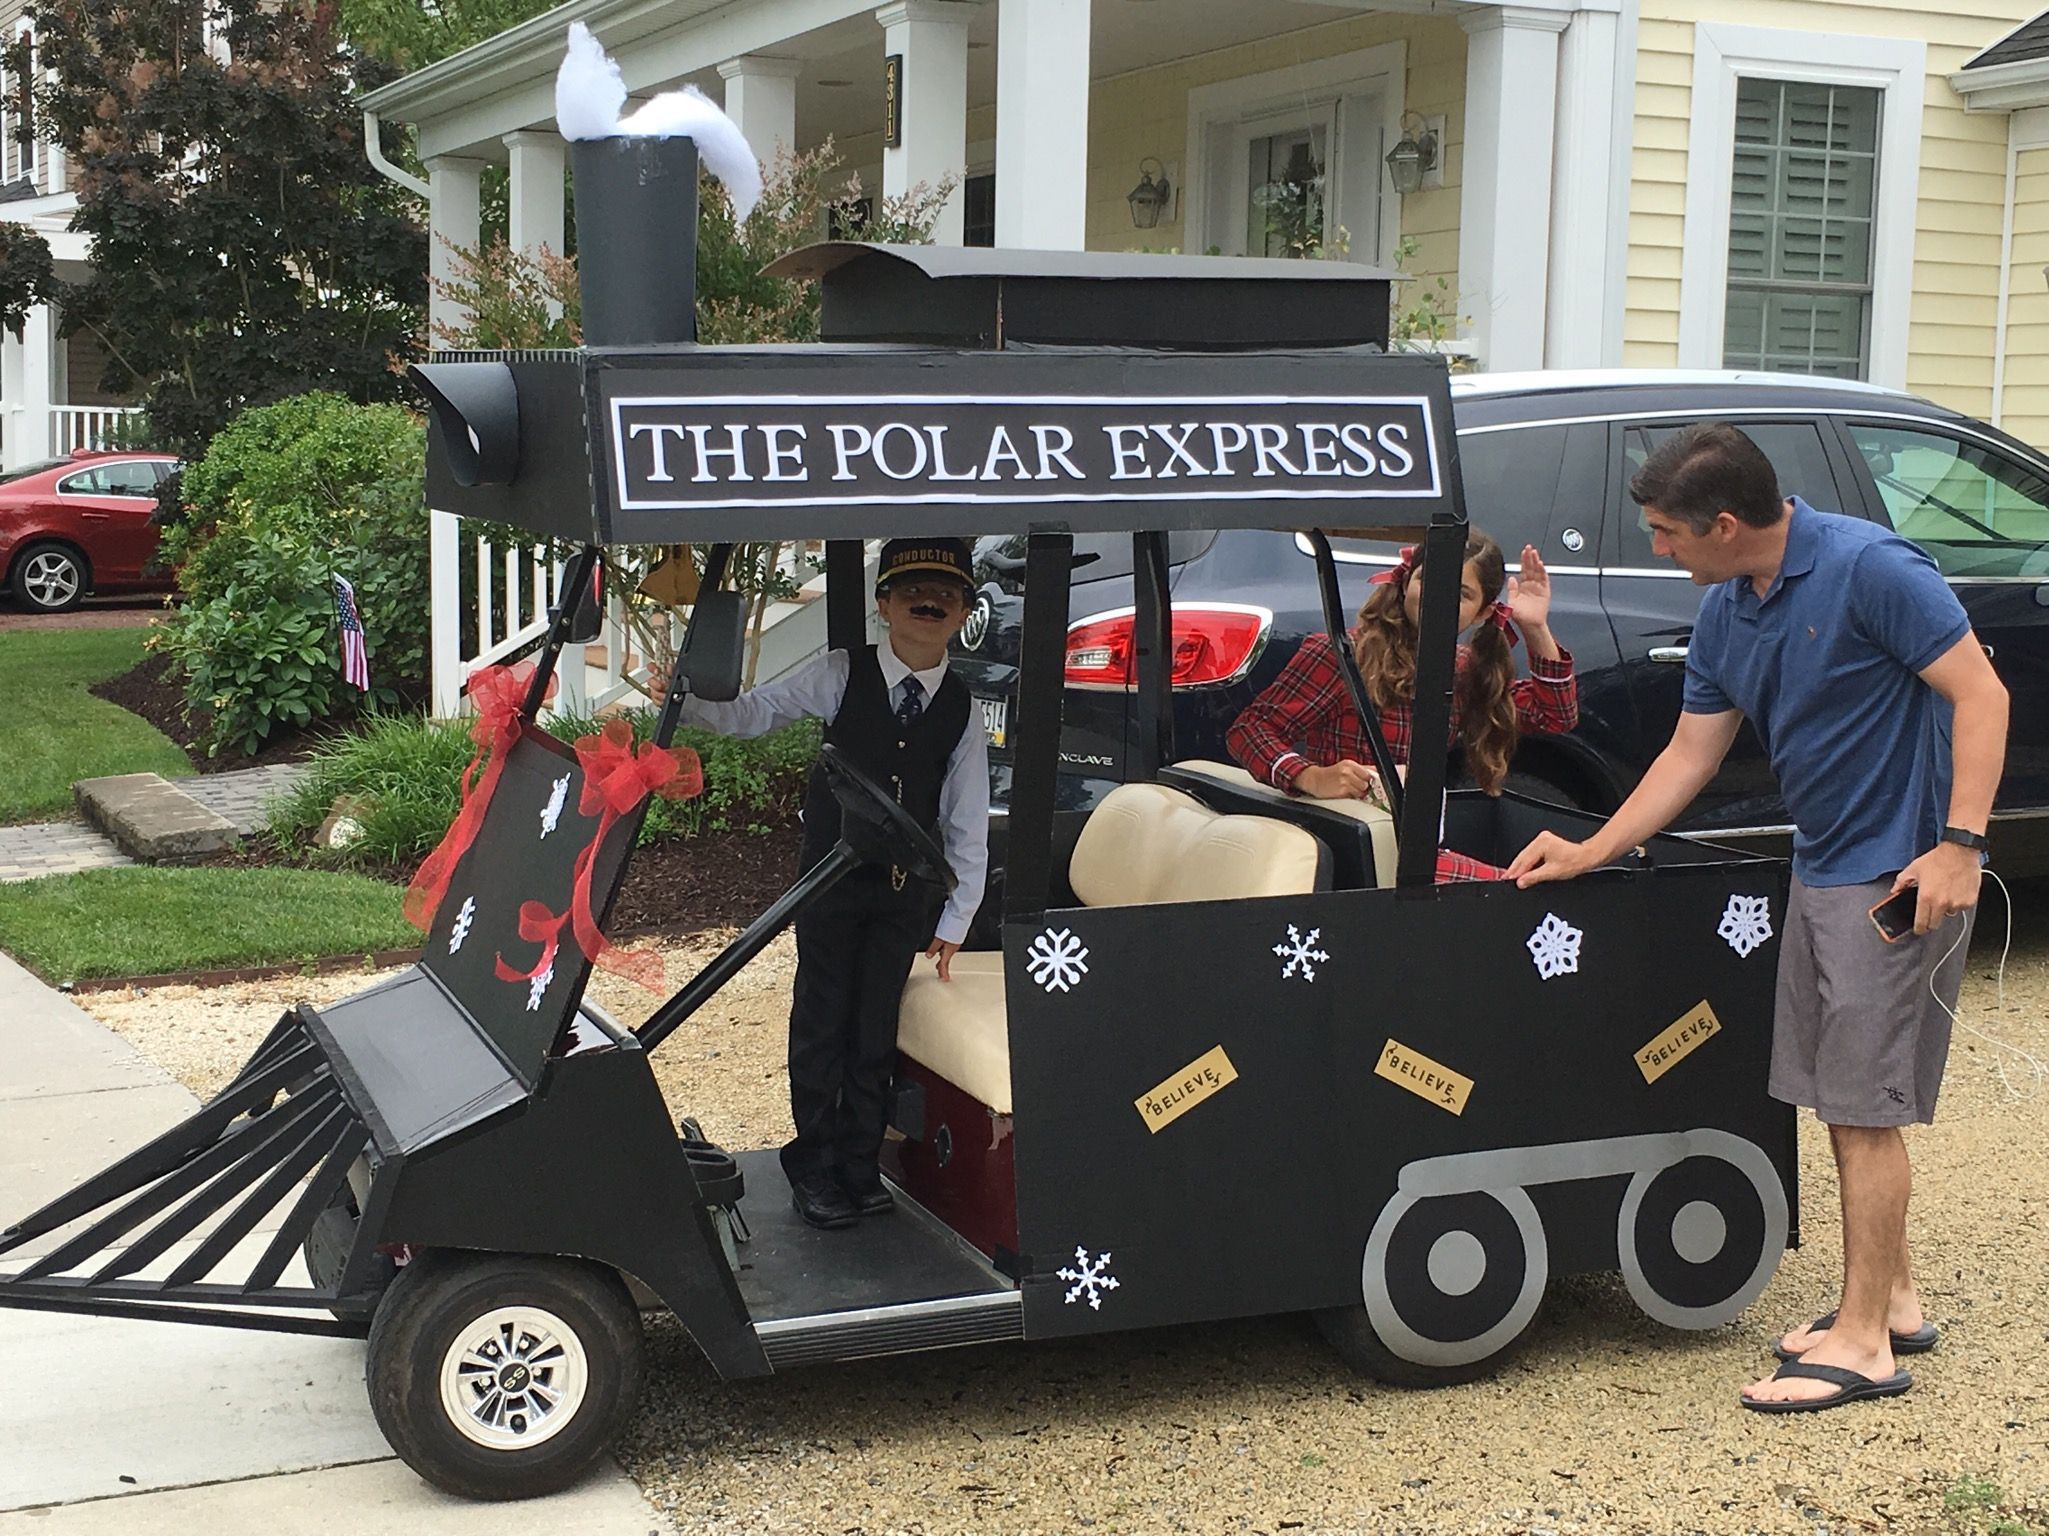 entry in golf cart parade july 2016 see blog for details http